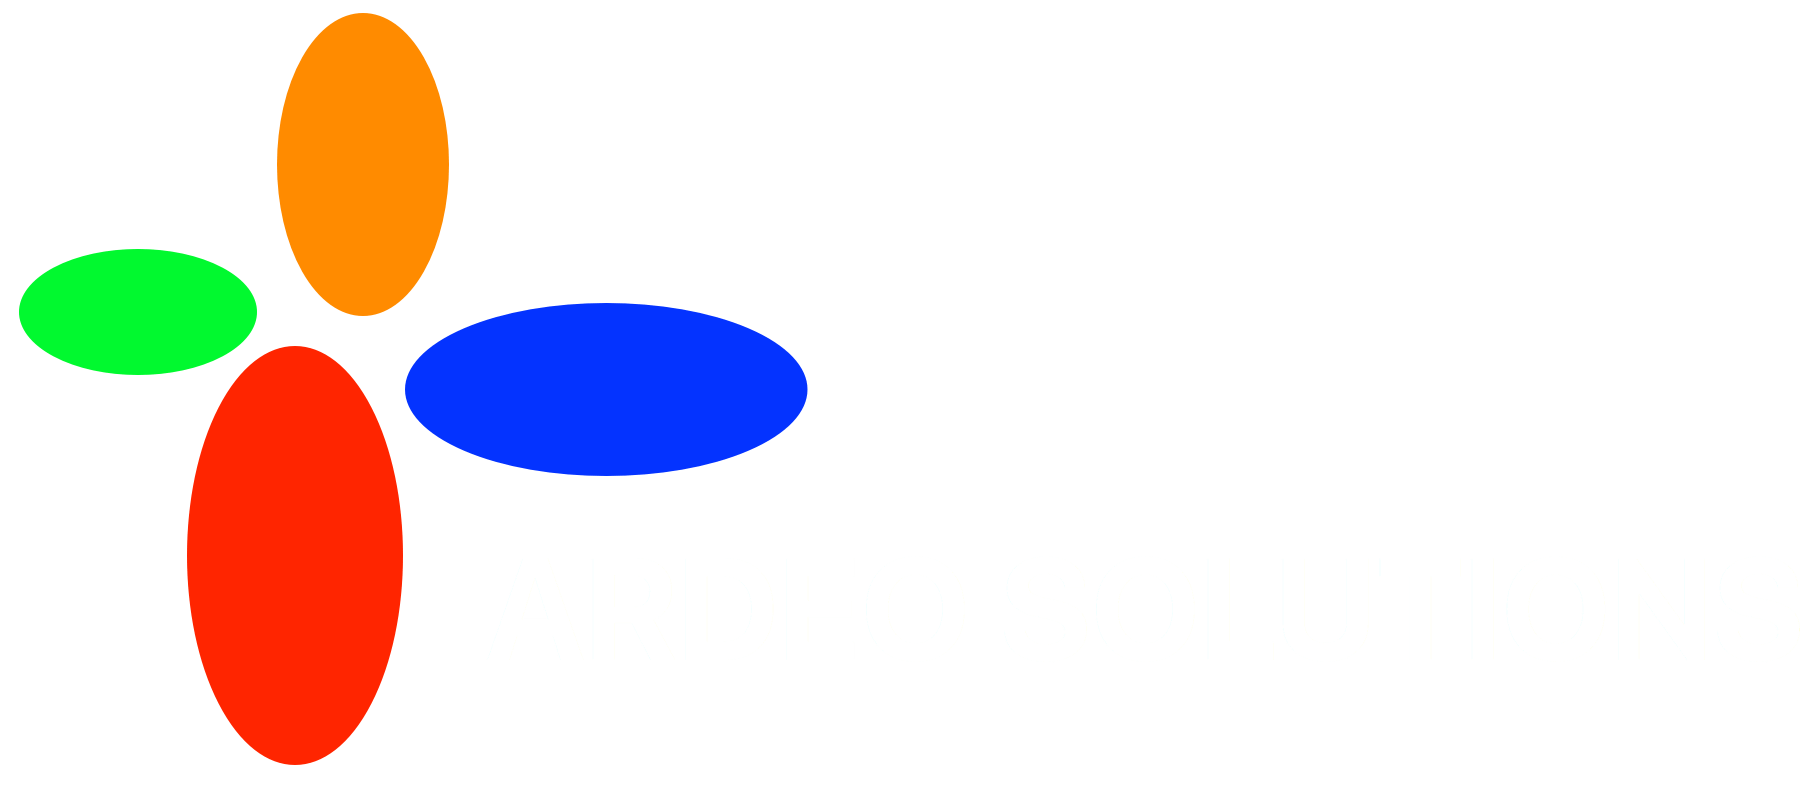 ARDEO SOLUTIONS PTE LTD